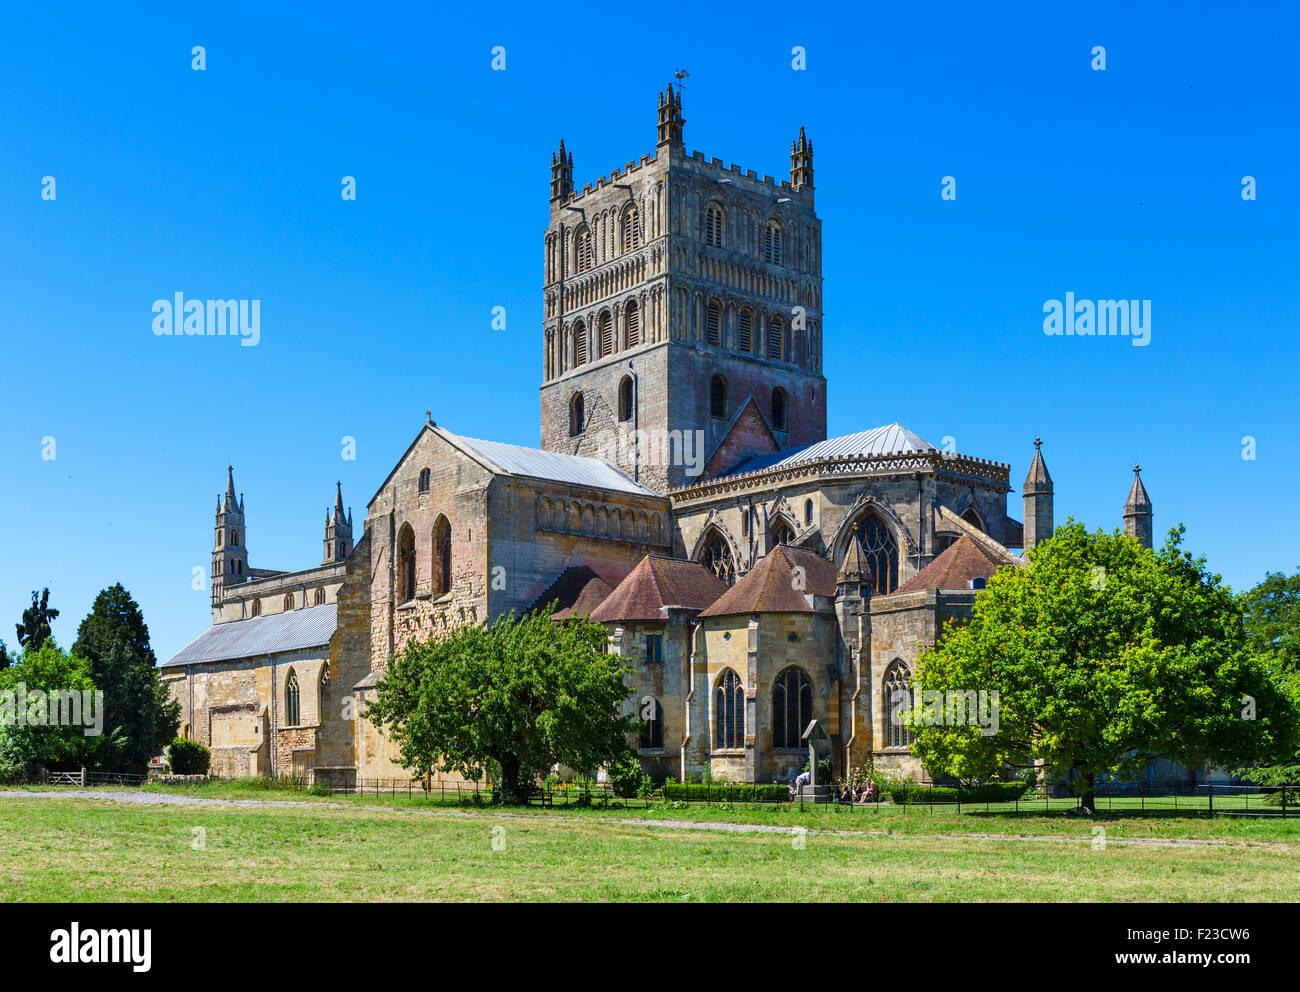 Tewkesbury Abbey or the Abbey Church of St Mary the Virgin, Tewkesbury, Gloucestershire, England, UK - Stock Image